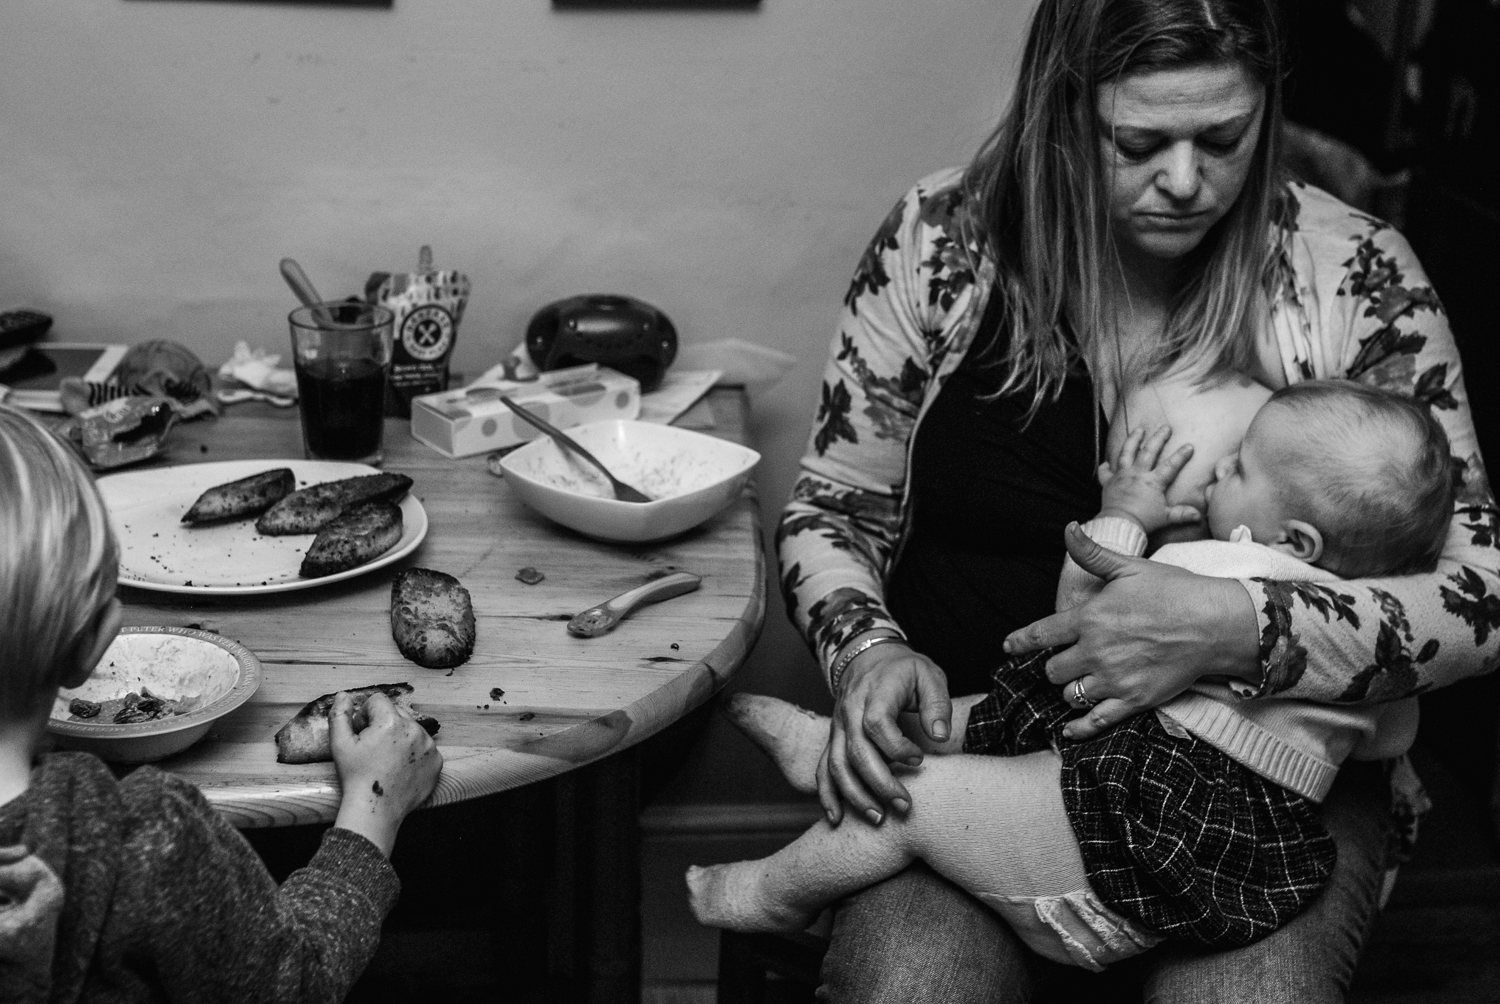 A mother sits and breastfeeds her daughter at the dinner table as she sits with her family to have dinner.